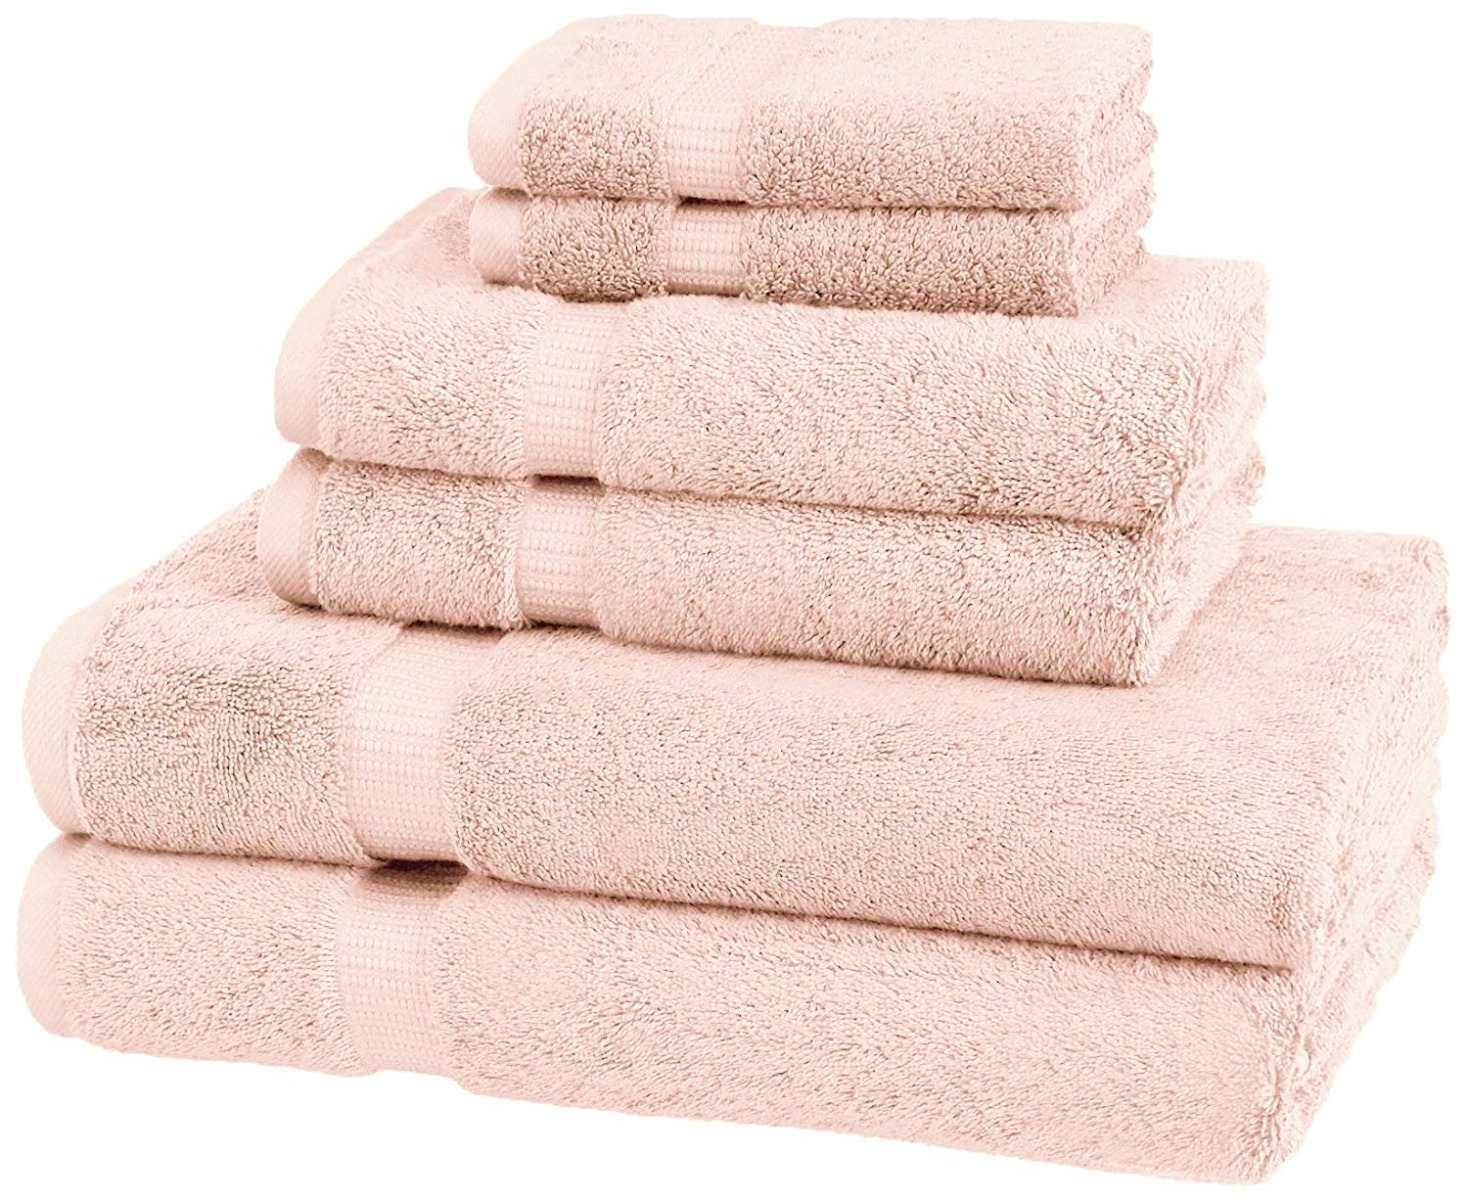 Supperfile collection - Bath sheet pink 105x180